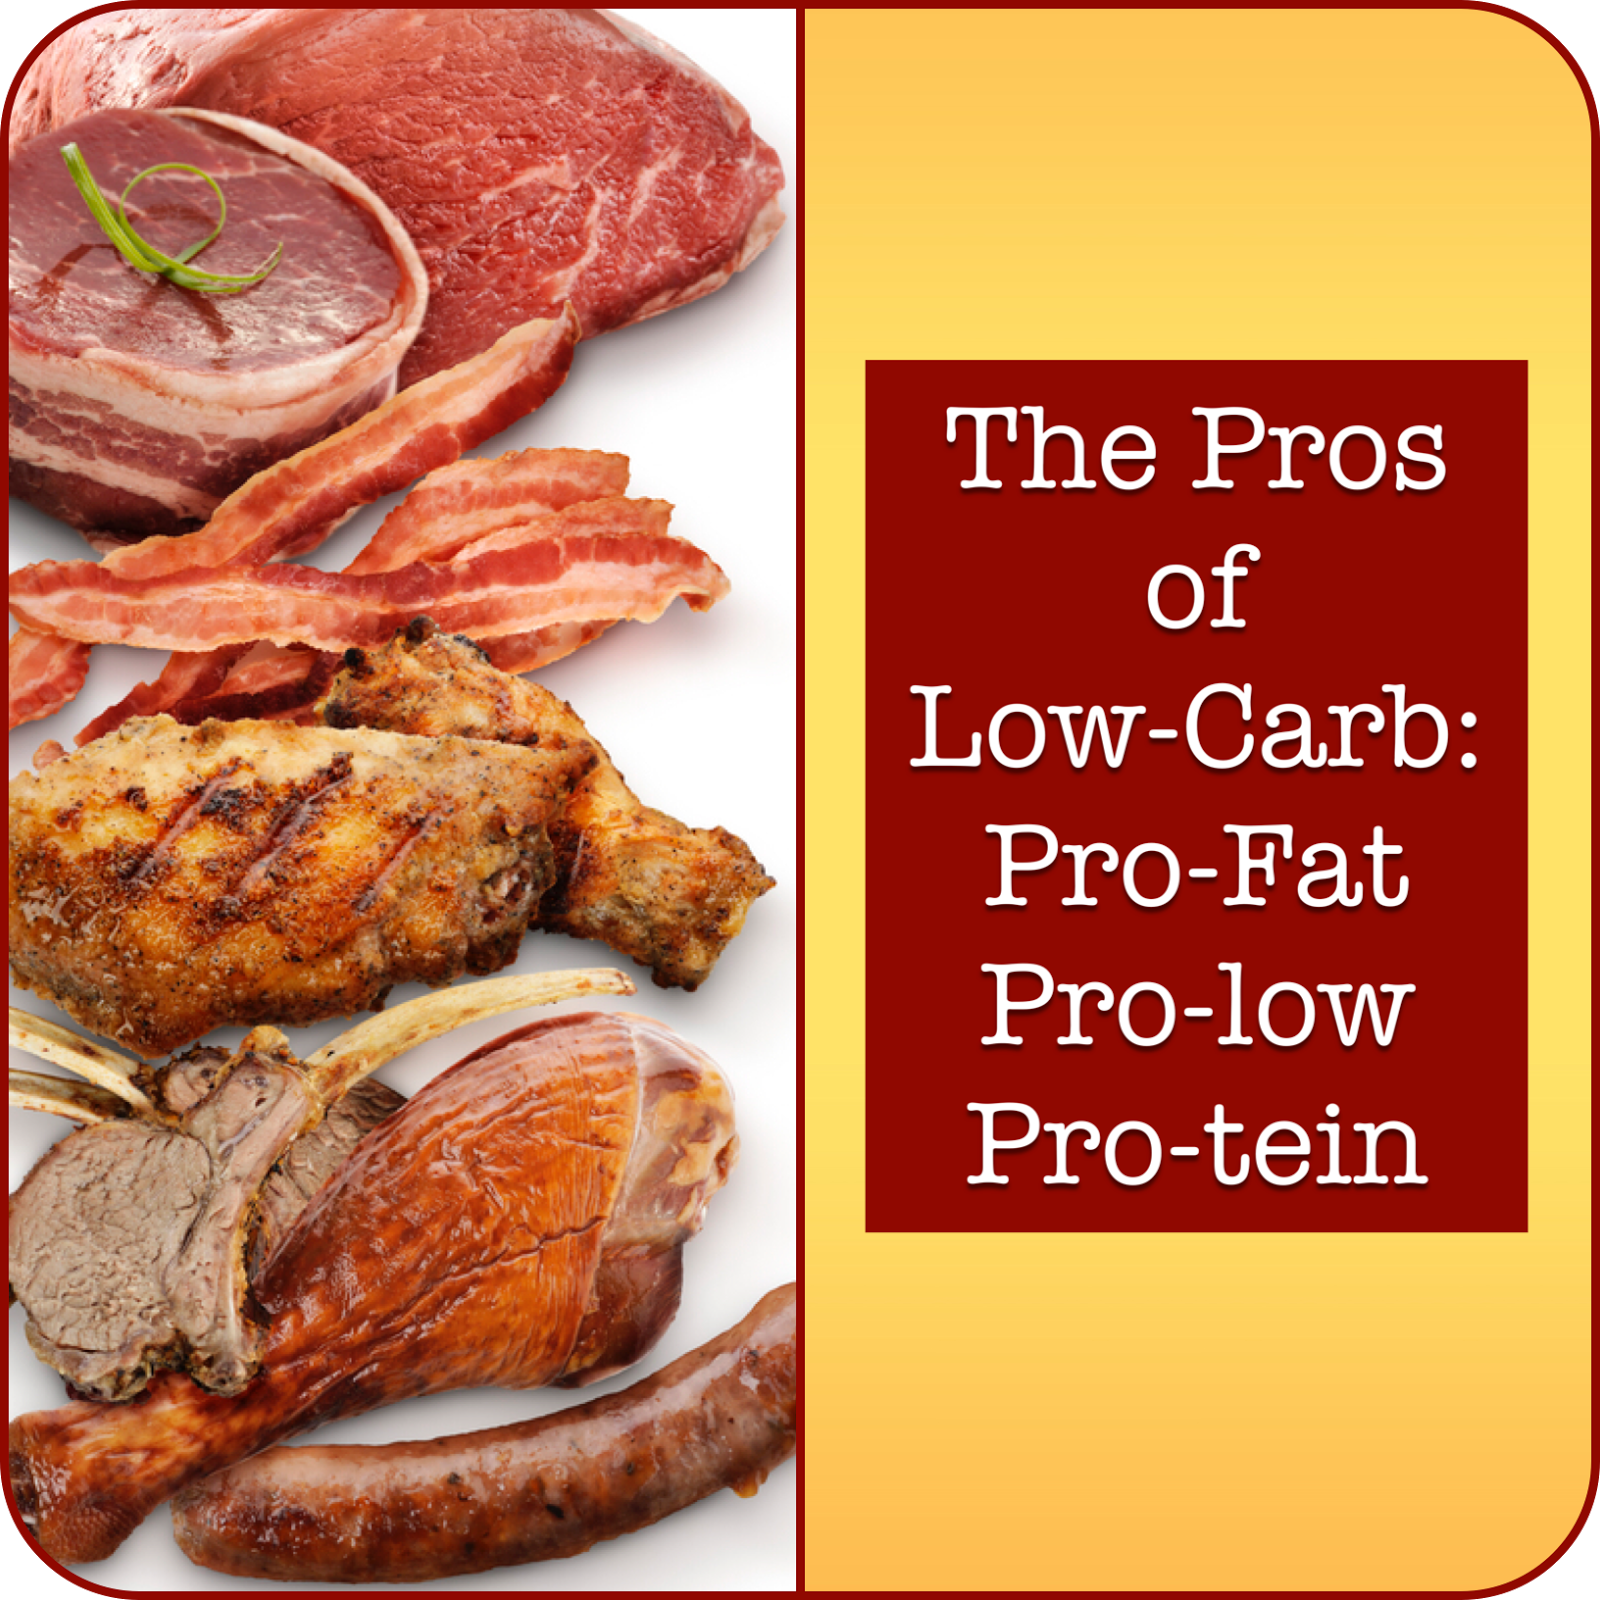 THE PROS OF LOW-CARB